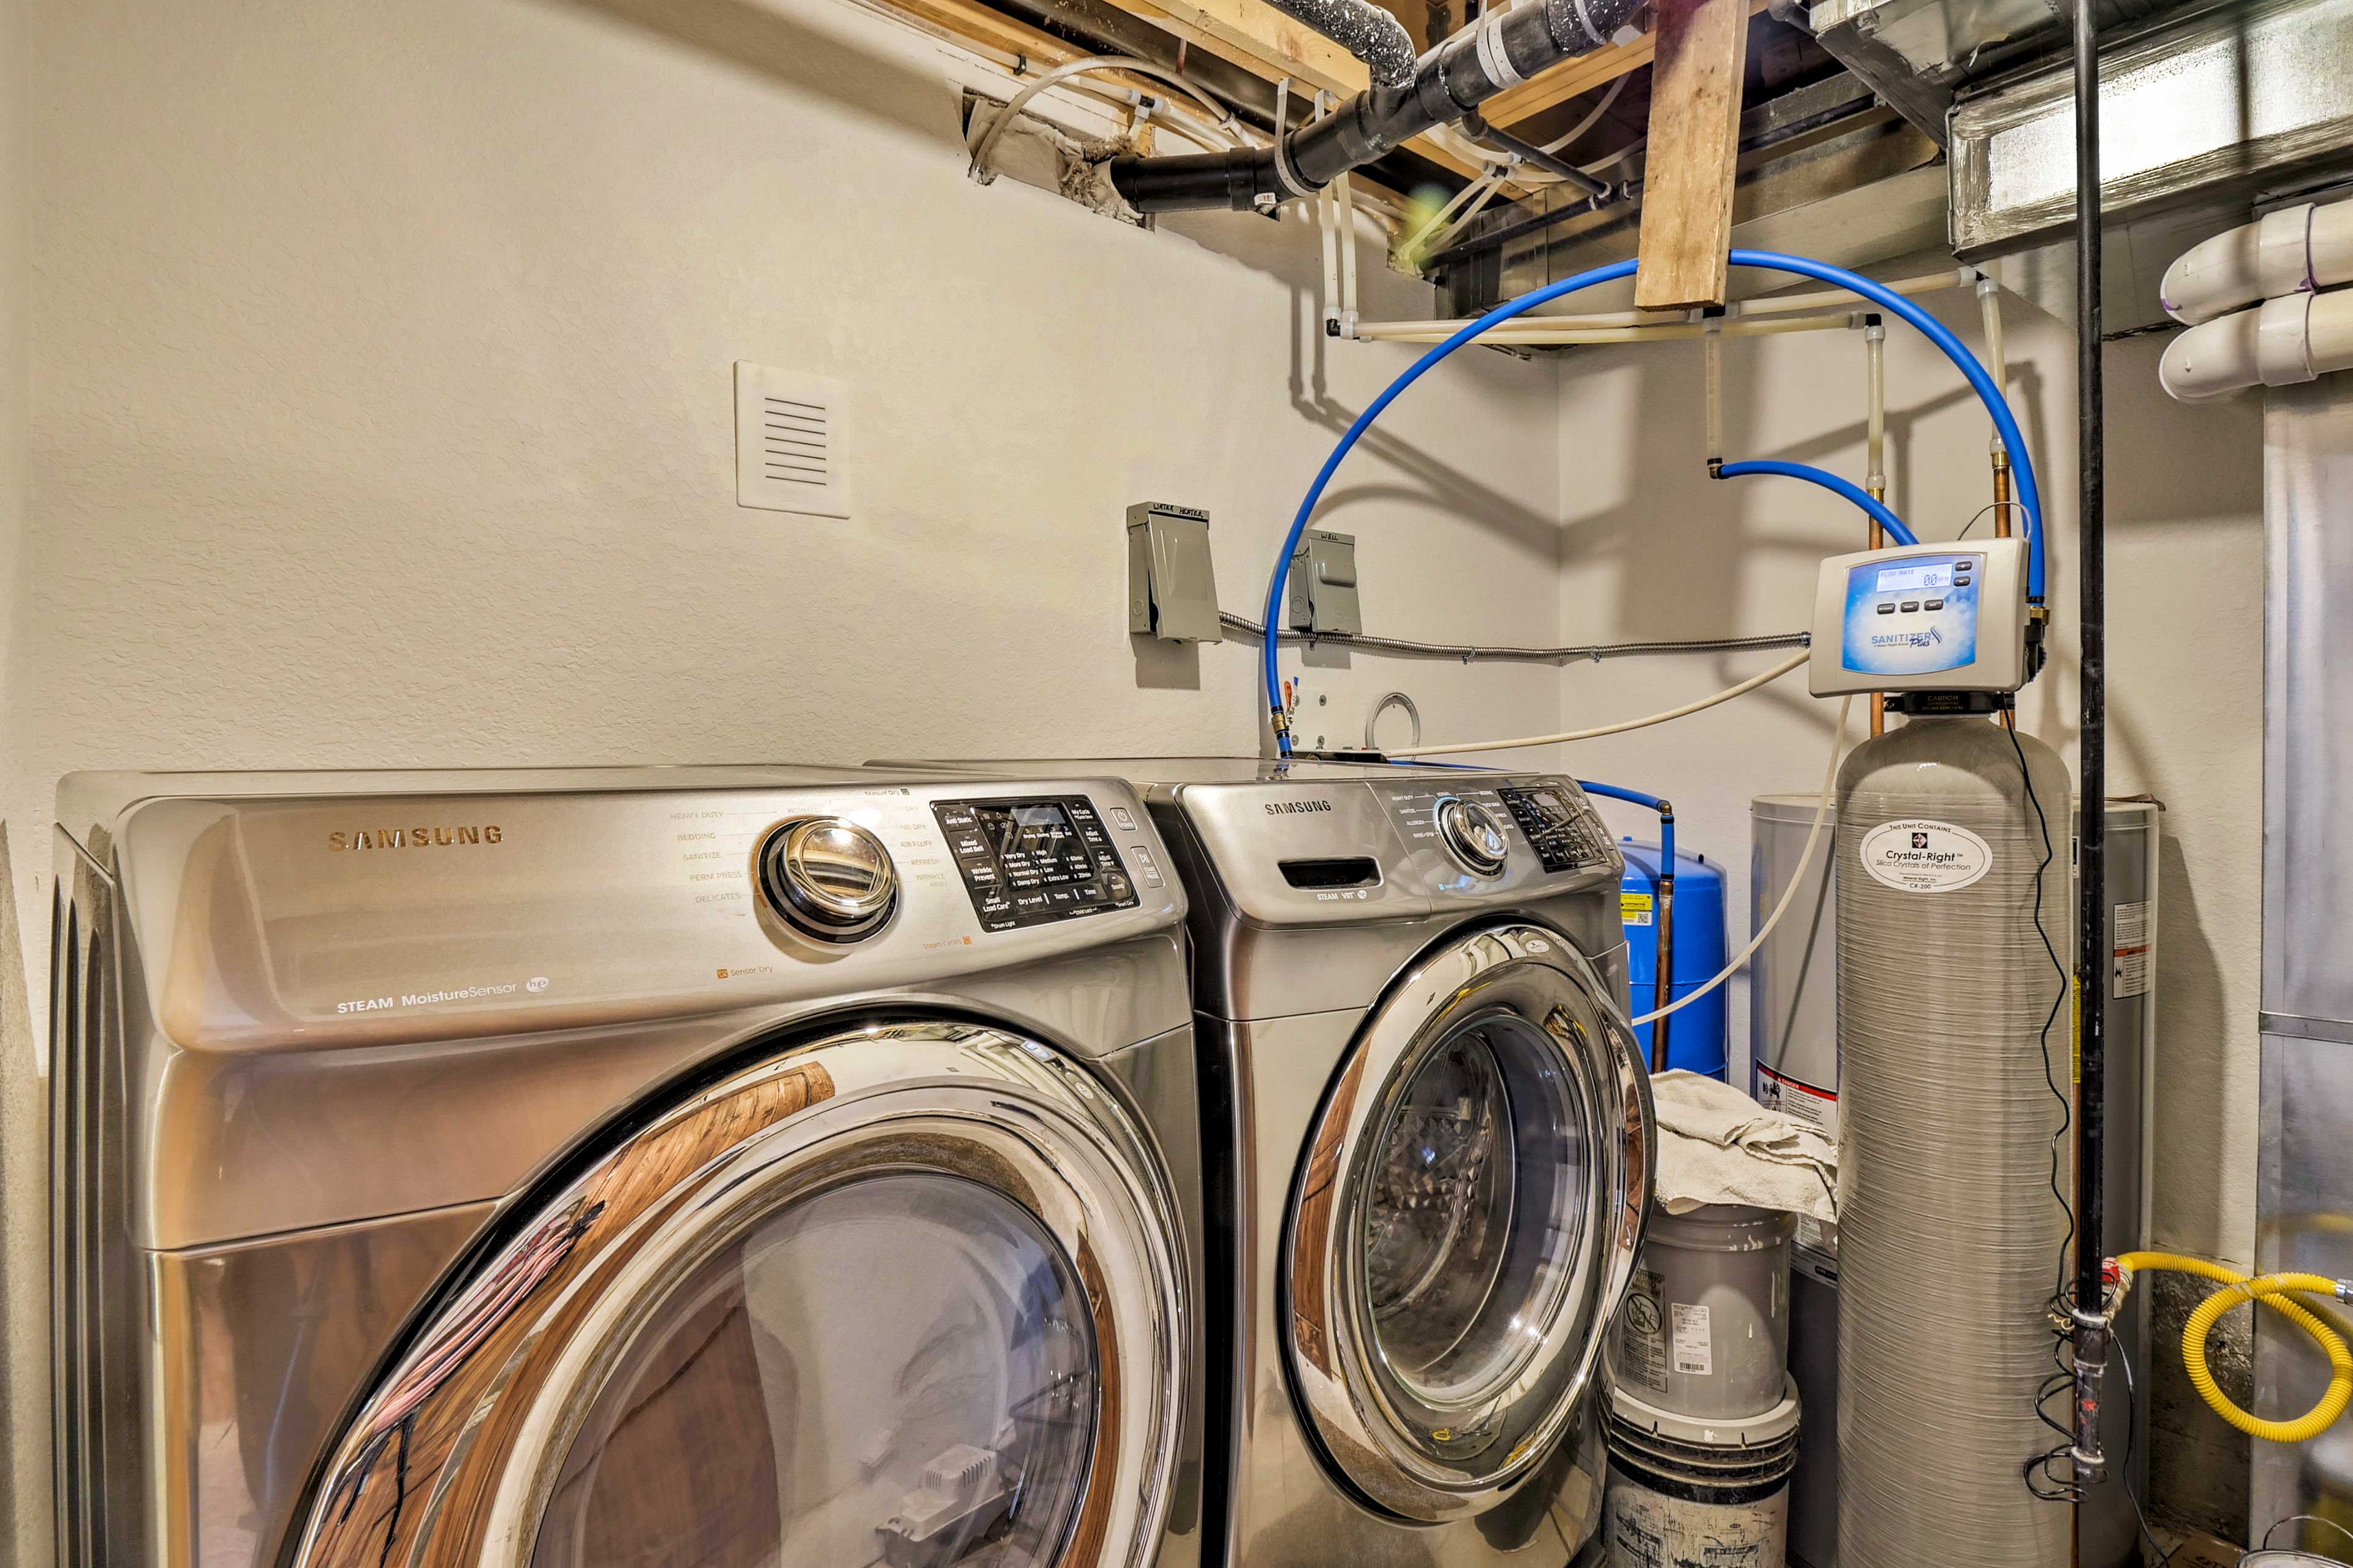 The washer and dryer are located off the living room.